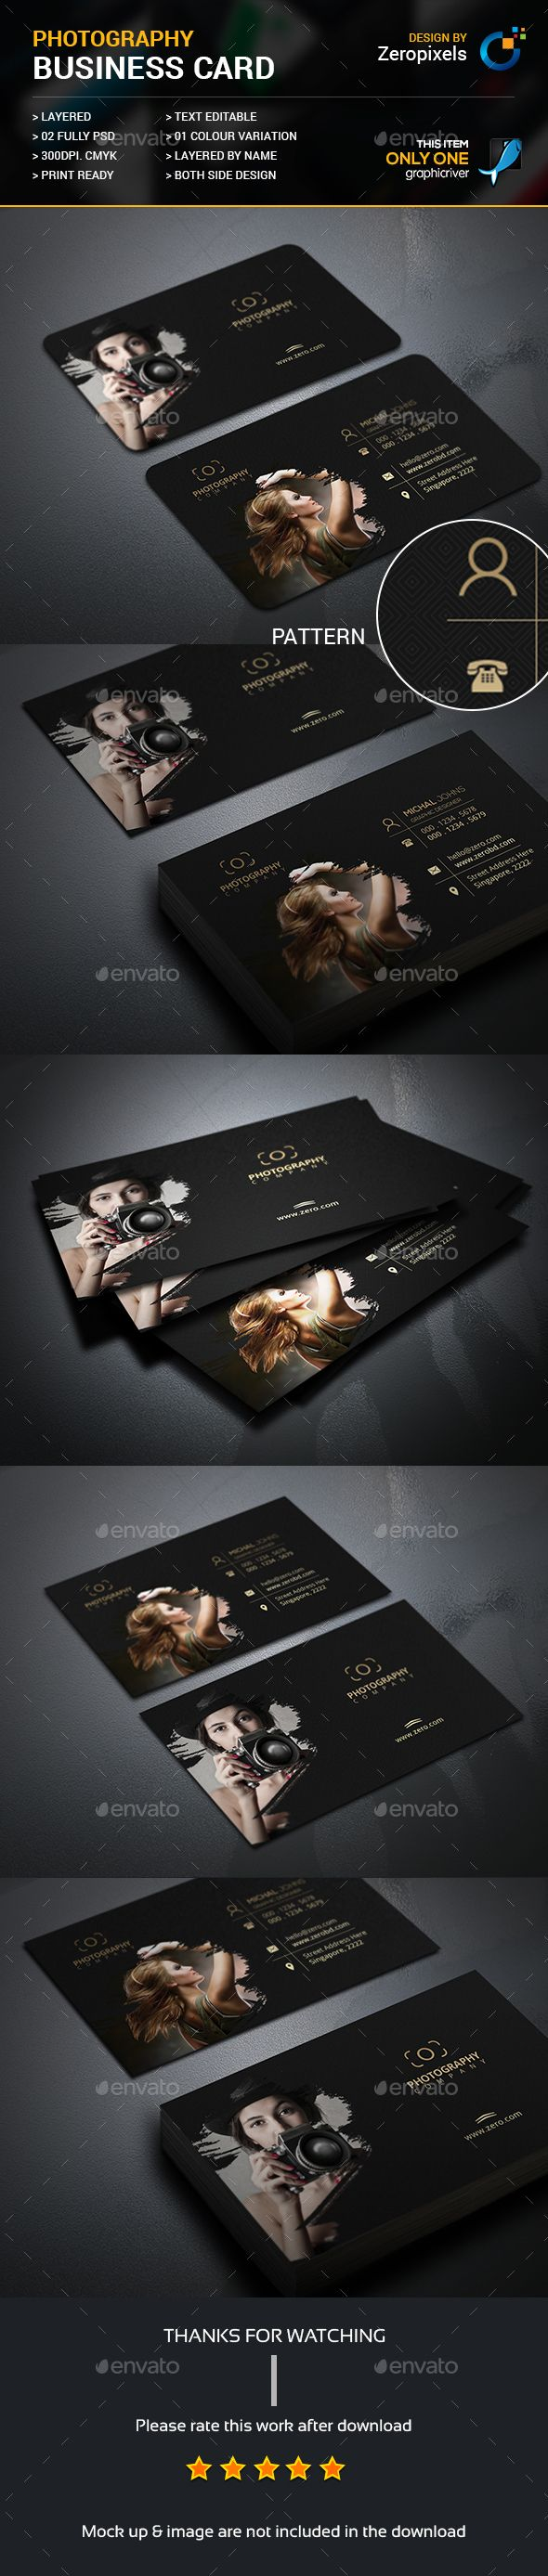 40 Best Business Cards Images On Pinterest Business Card Design